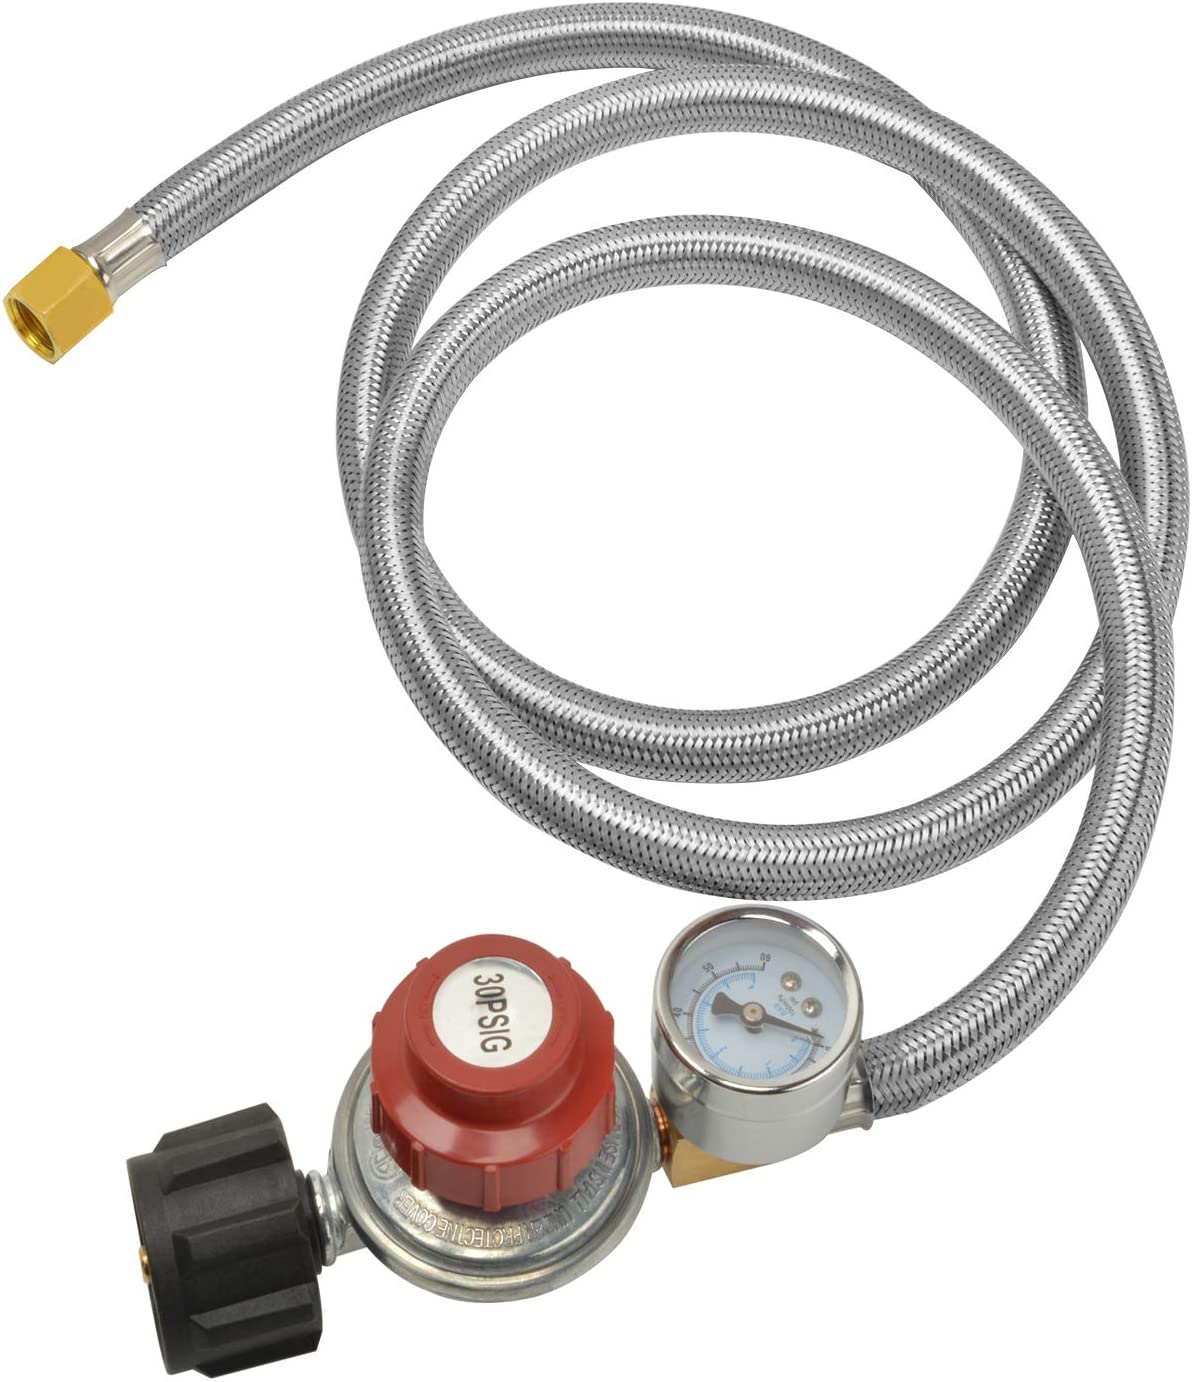 only 5Ft 0-30PSI Adjustable Propane Regulator Stainless Steel Braided Hose QCC/Type 1 Connection with Gauge for Grills, Burners, Heaters, Cookers, Fire Pits and More